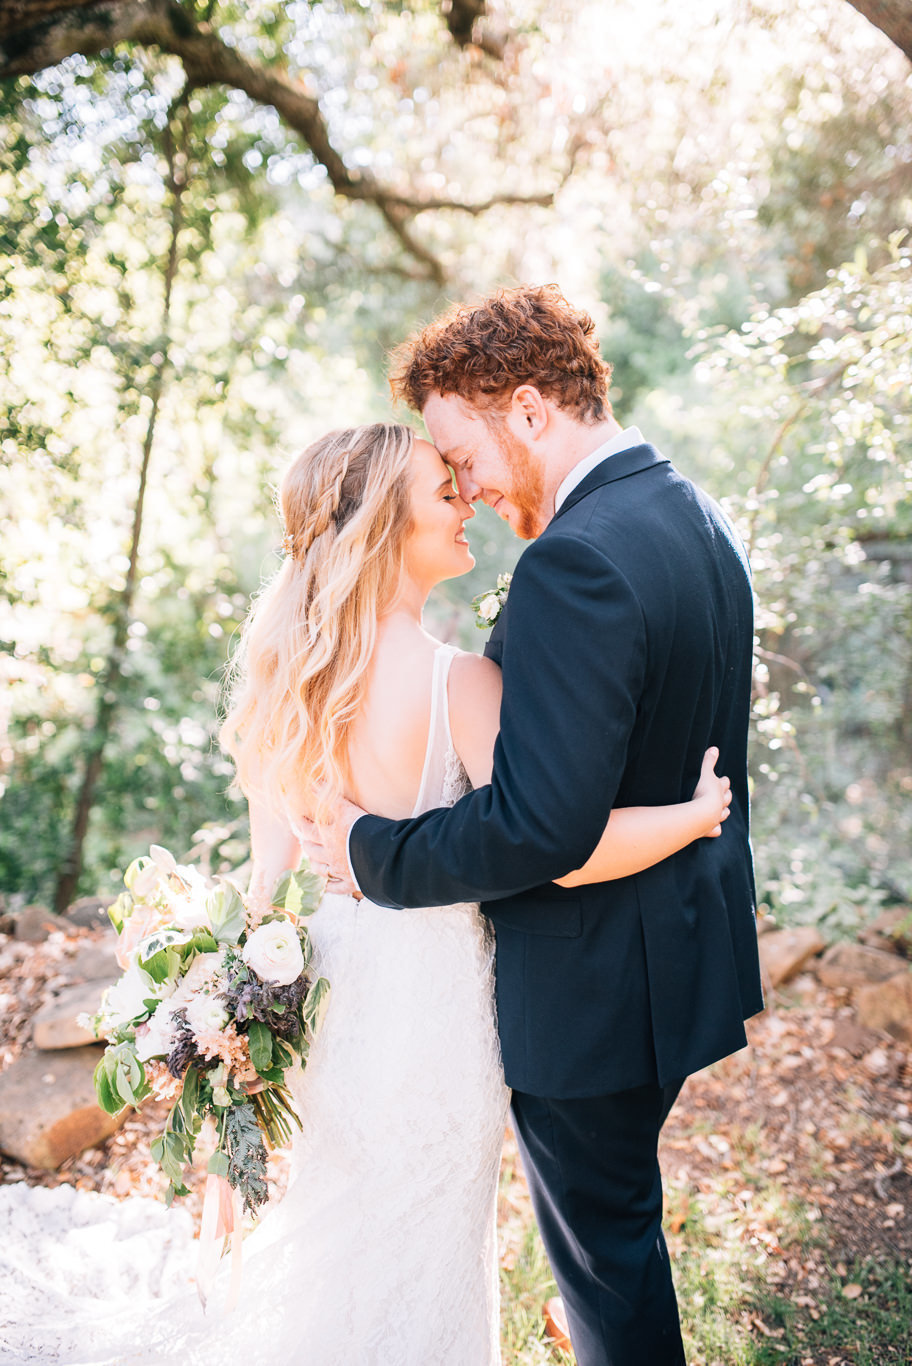 San Luis Obispo wedding photo by Amber McGaughey032